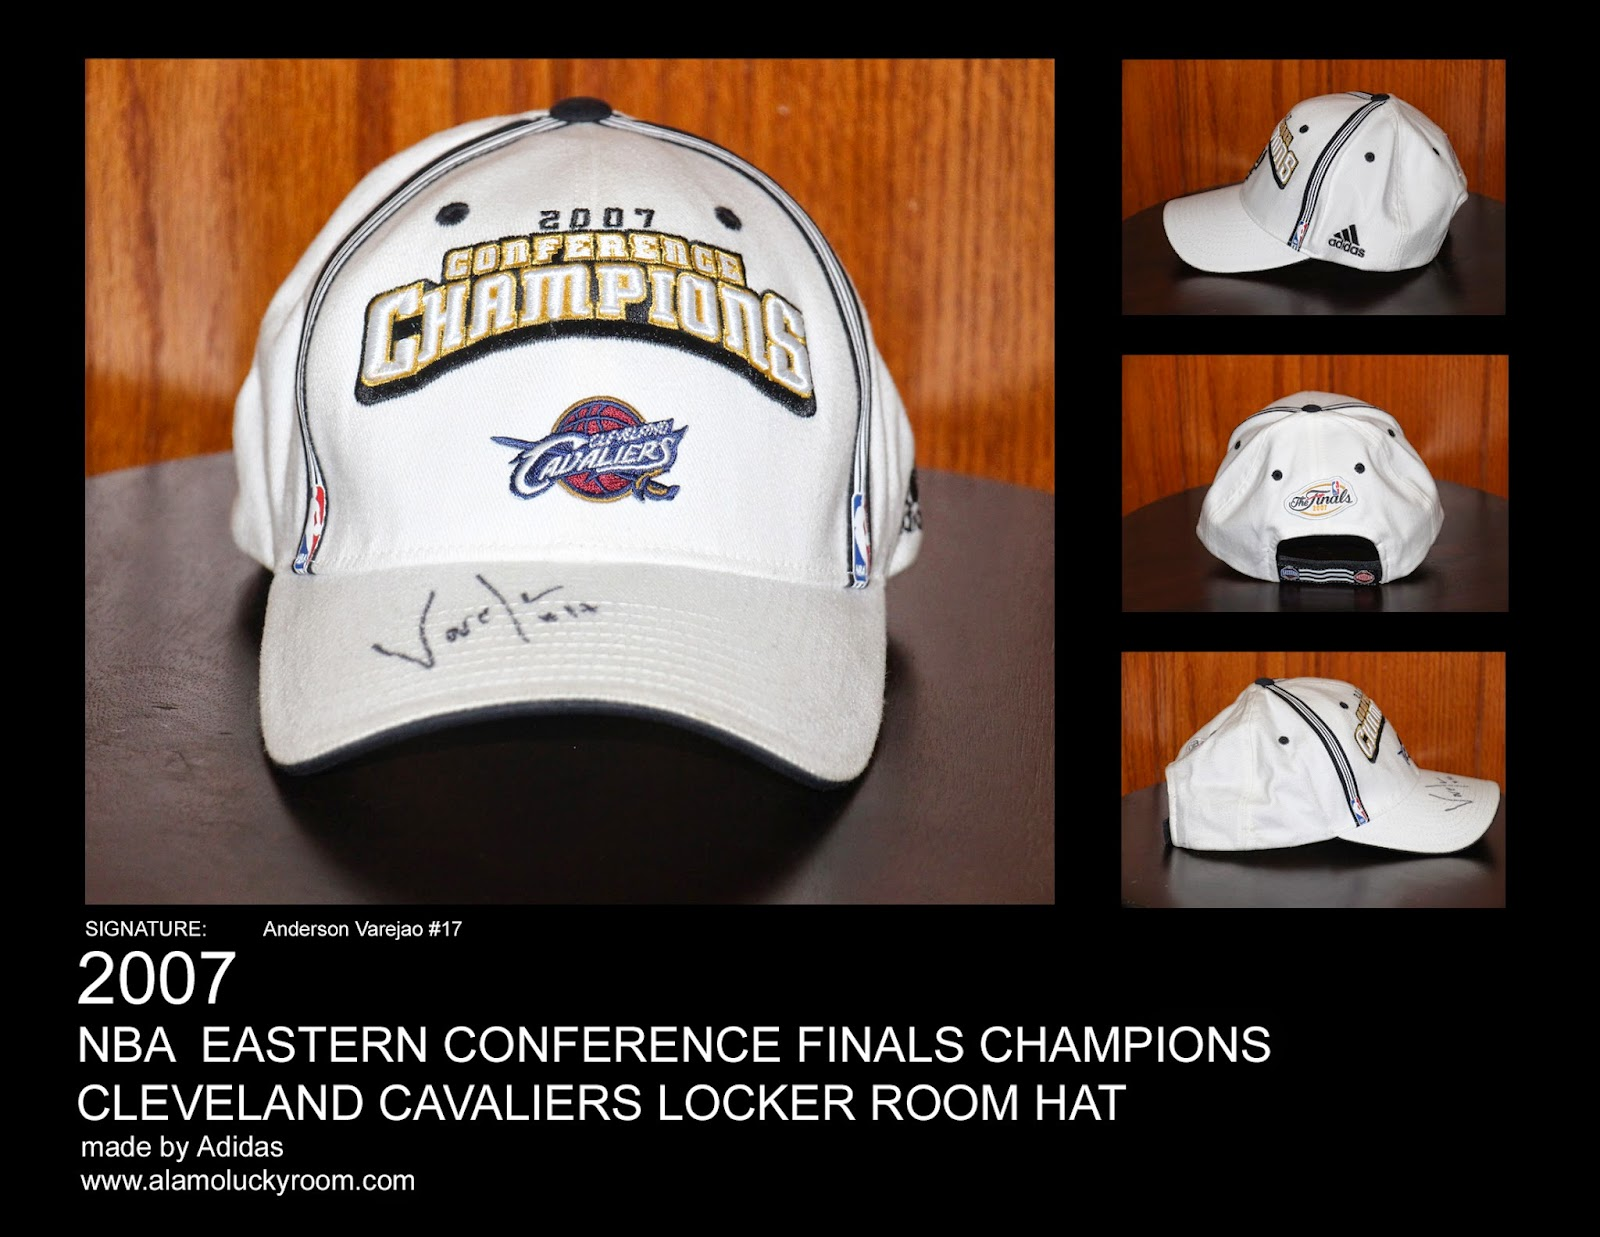 29b70c03c92 ... switzerland 2007 cleveland cavaliers nba eastern conference finals  champions locker room hat signed 5a09b d9302